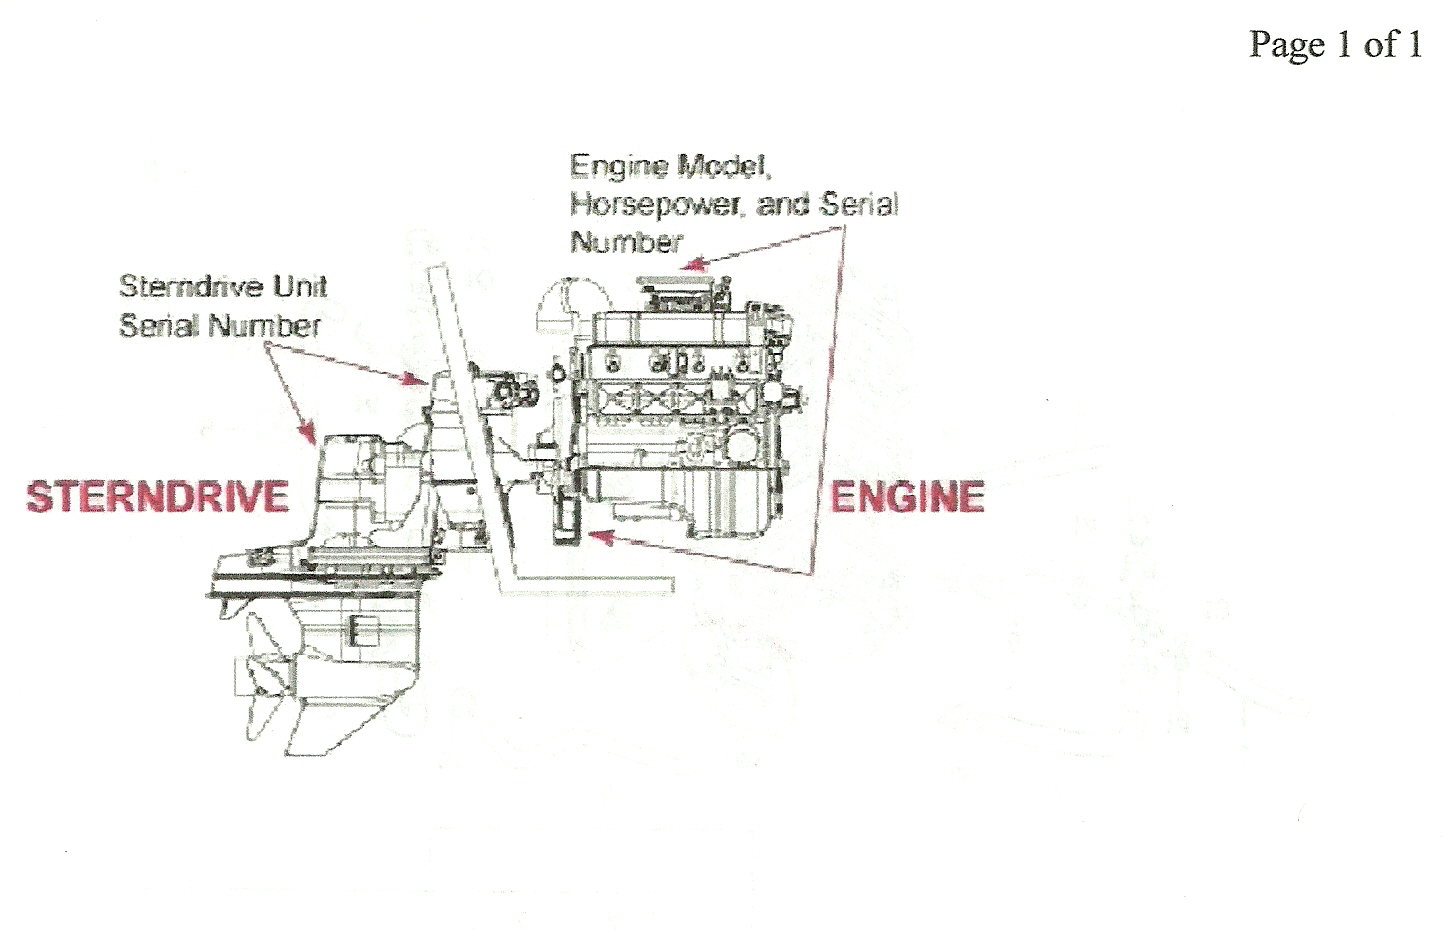 1989 omc 305 inboard wiring diagram i have a 5 7 litre mercruiser the starter solenoid was  i have a 5 7 litre mercruiser the starter solenoid was